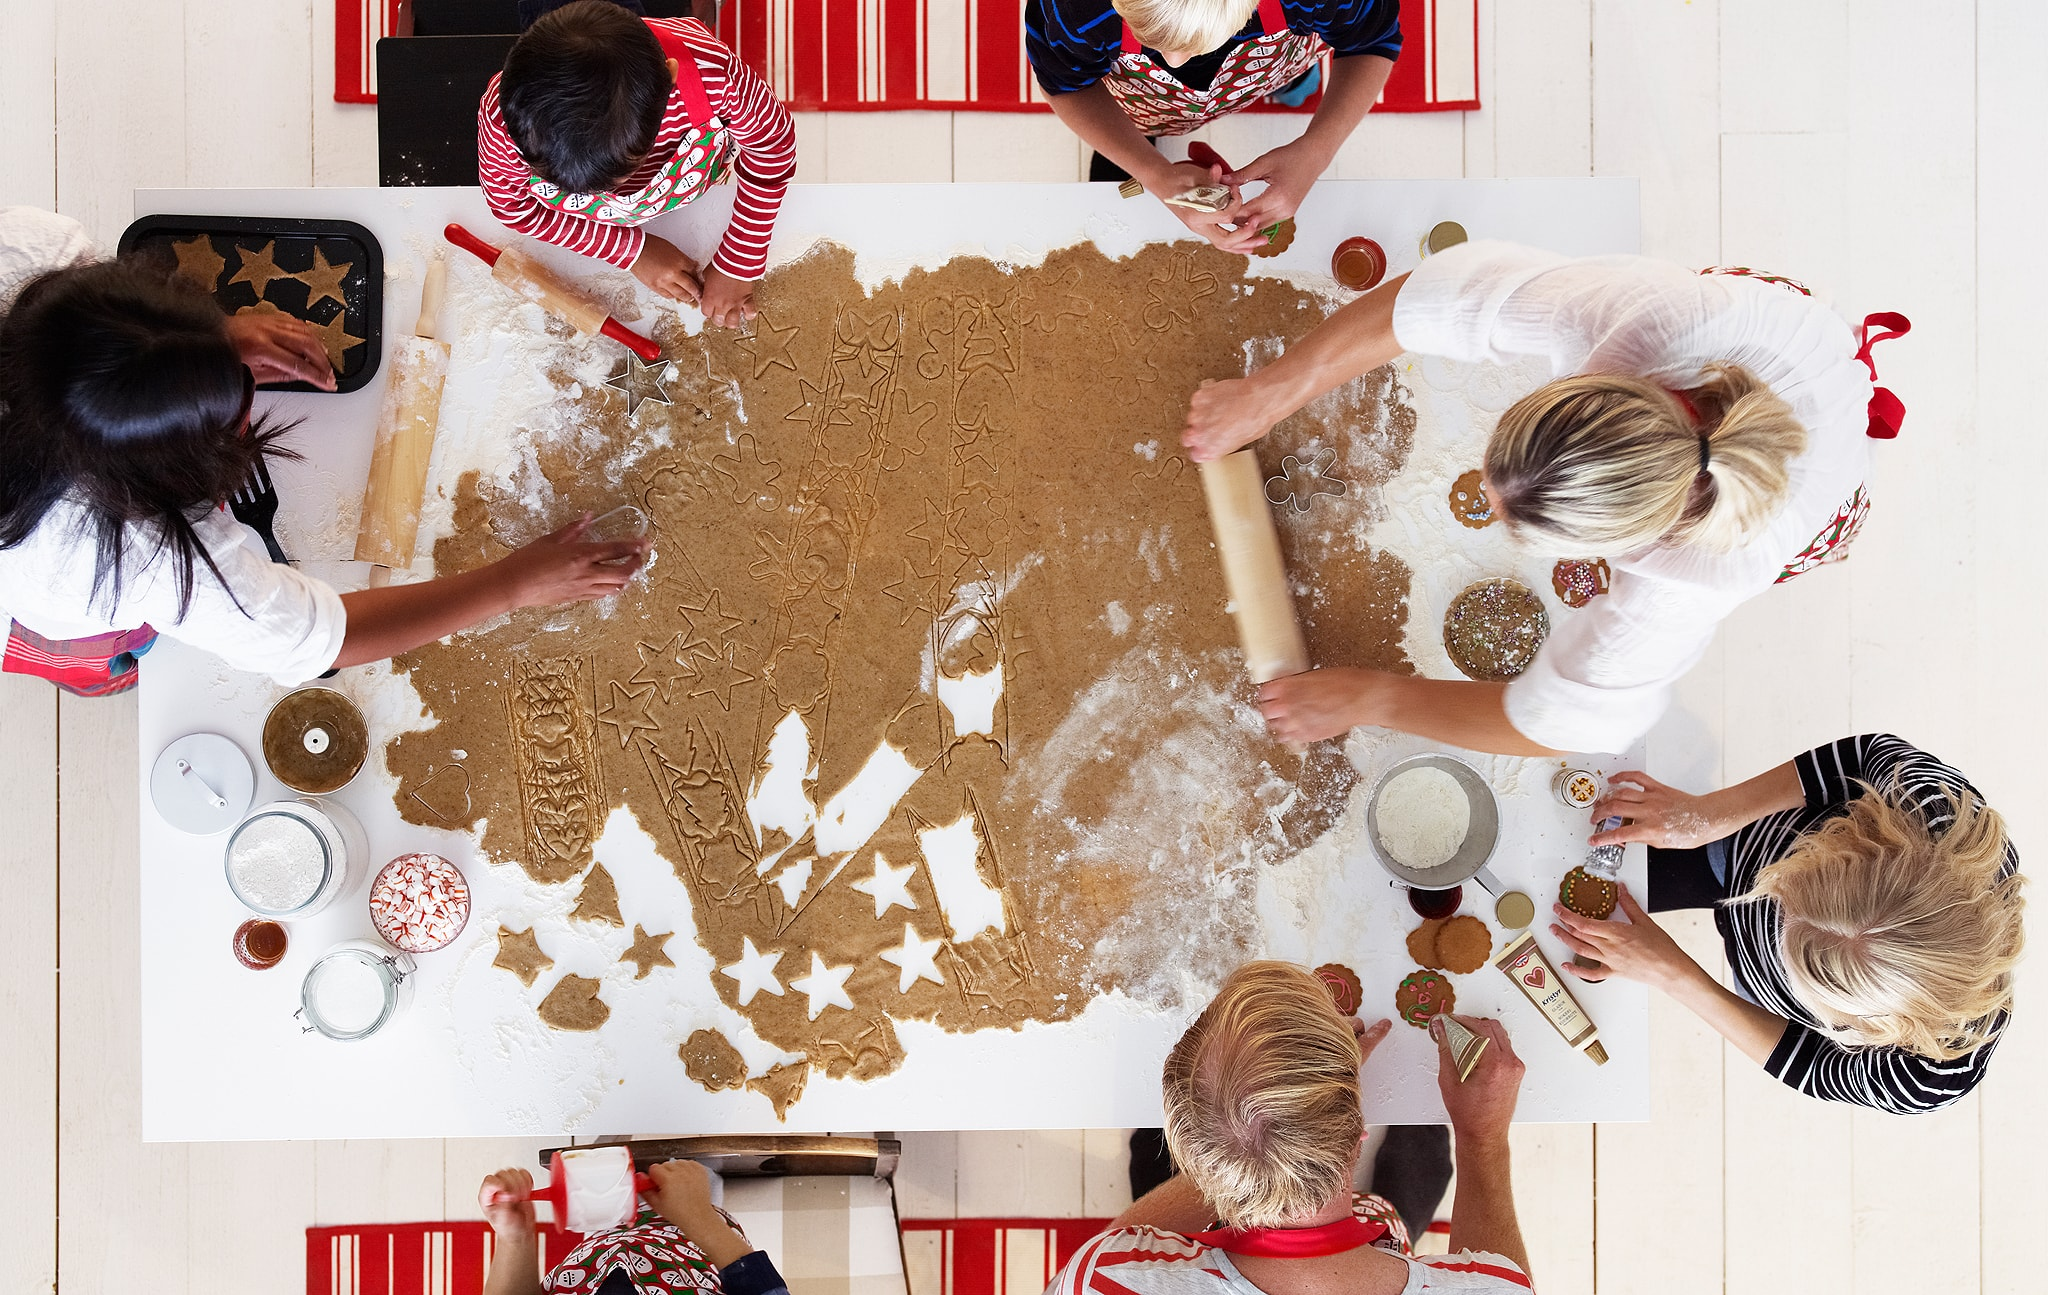 Gingerbread baking – a first taste of the holidays